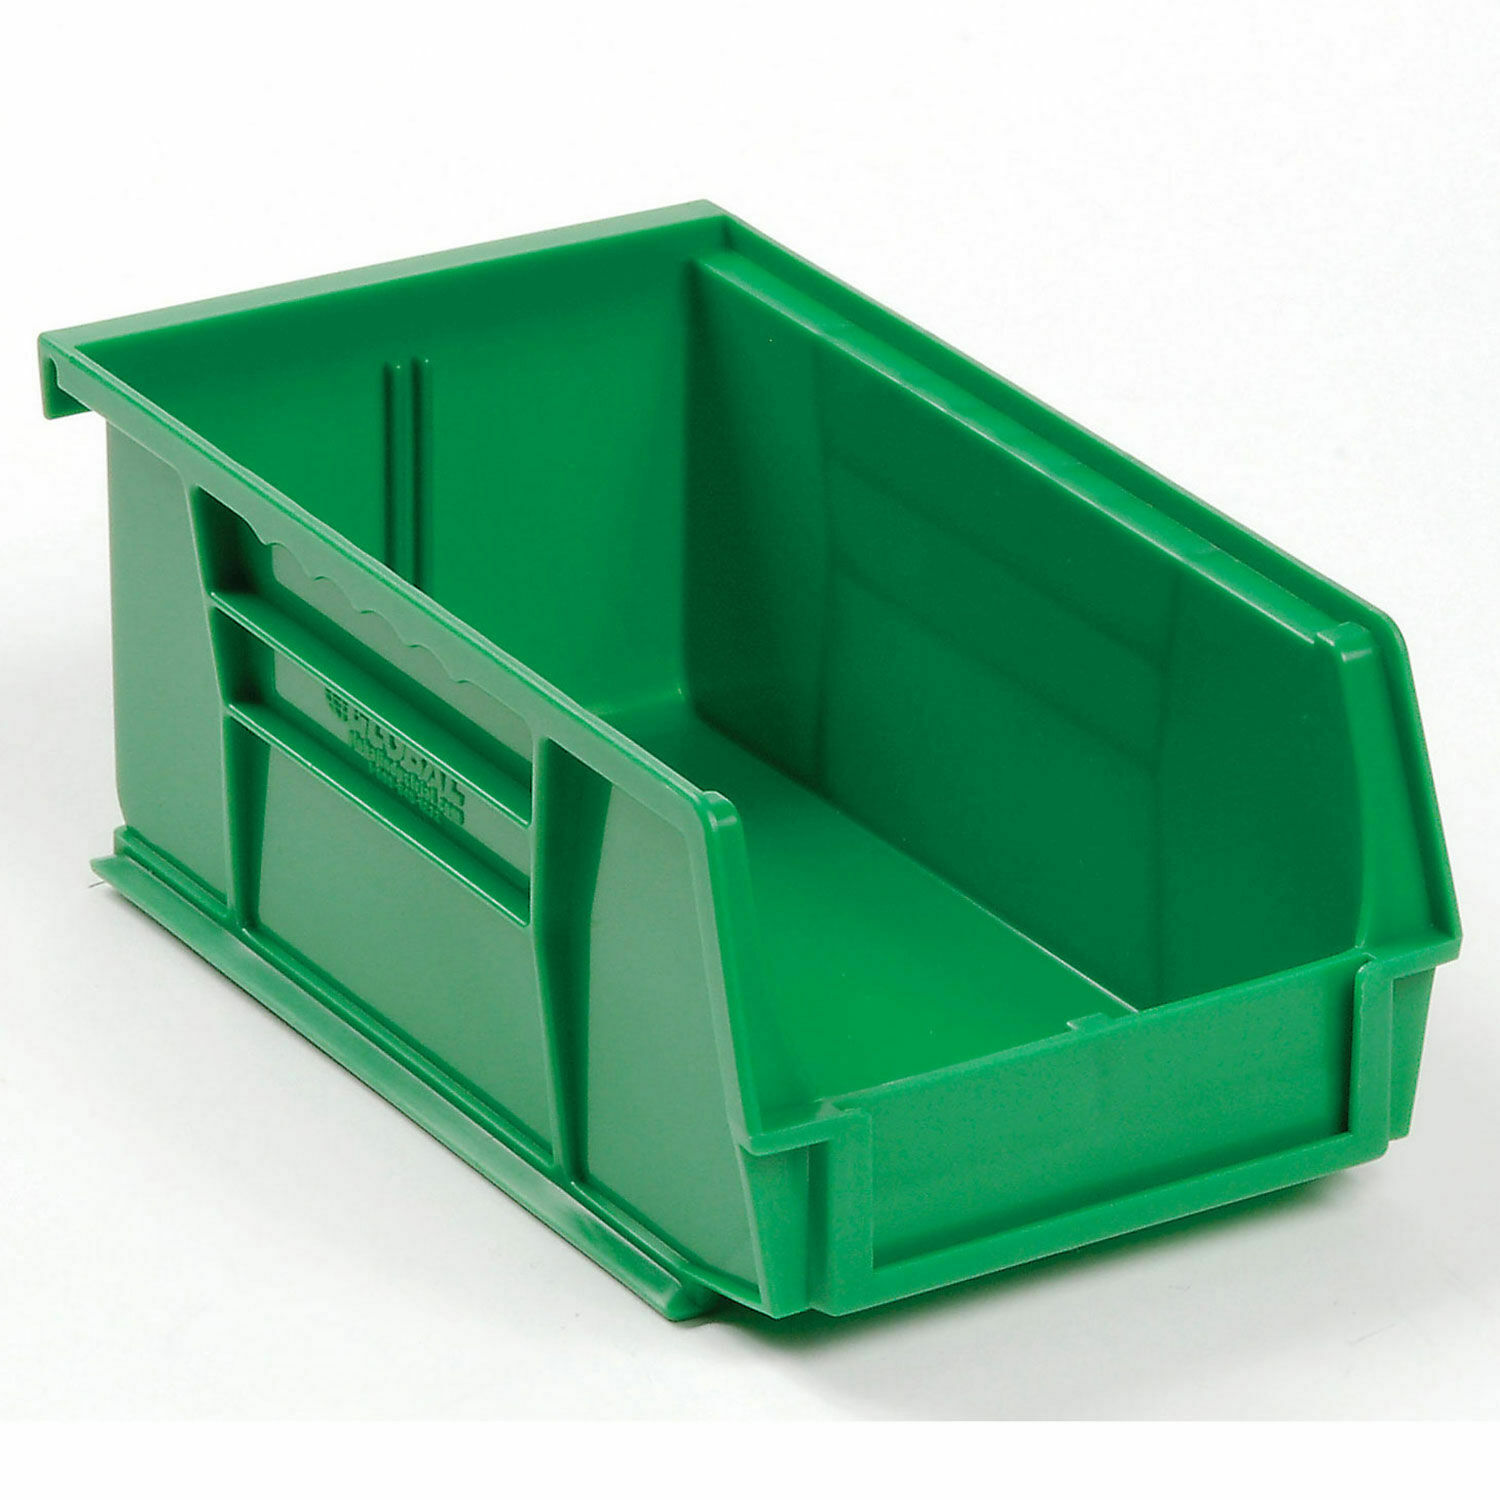 Pack of 10 RetailSource 17 7//8 x 8 3//8 x 4 Red Plastic Shelf Bin Boxes